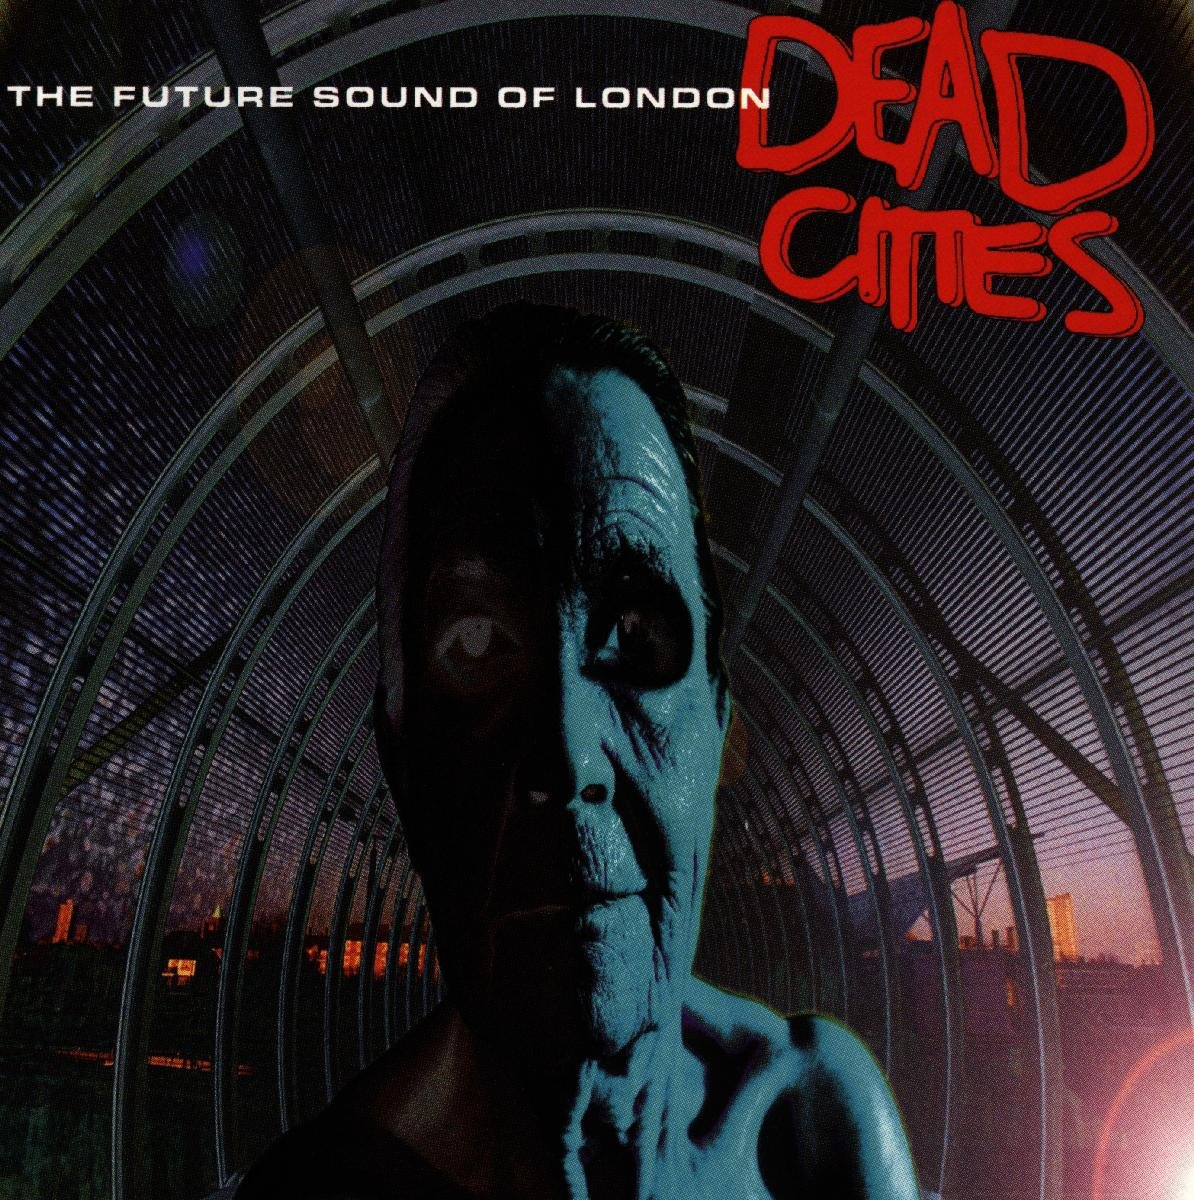 FUTURE SOUND OF LONDON, THE. DEAD CITIES dead london